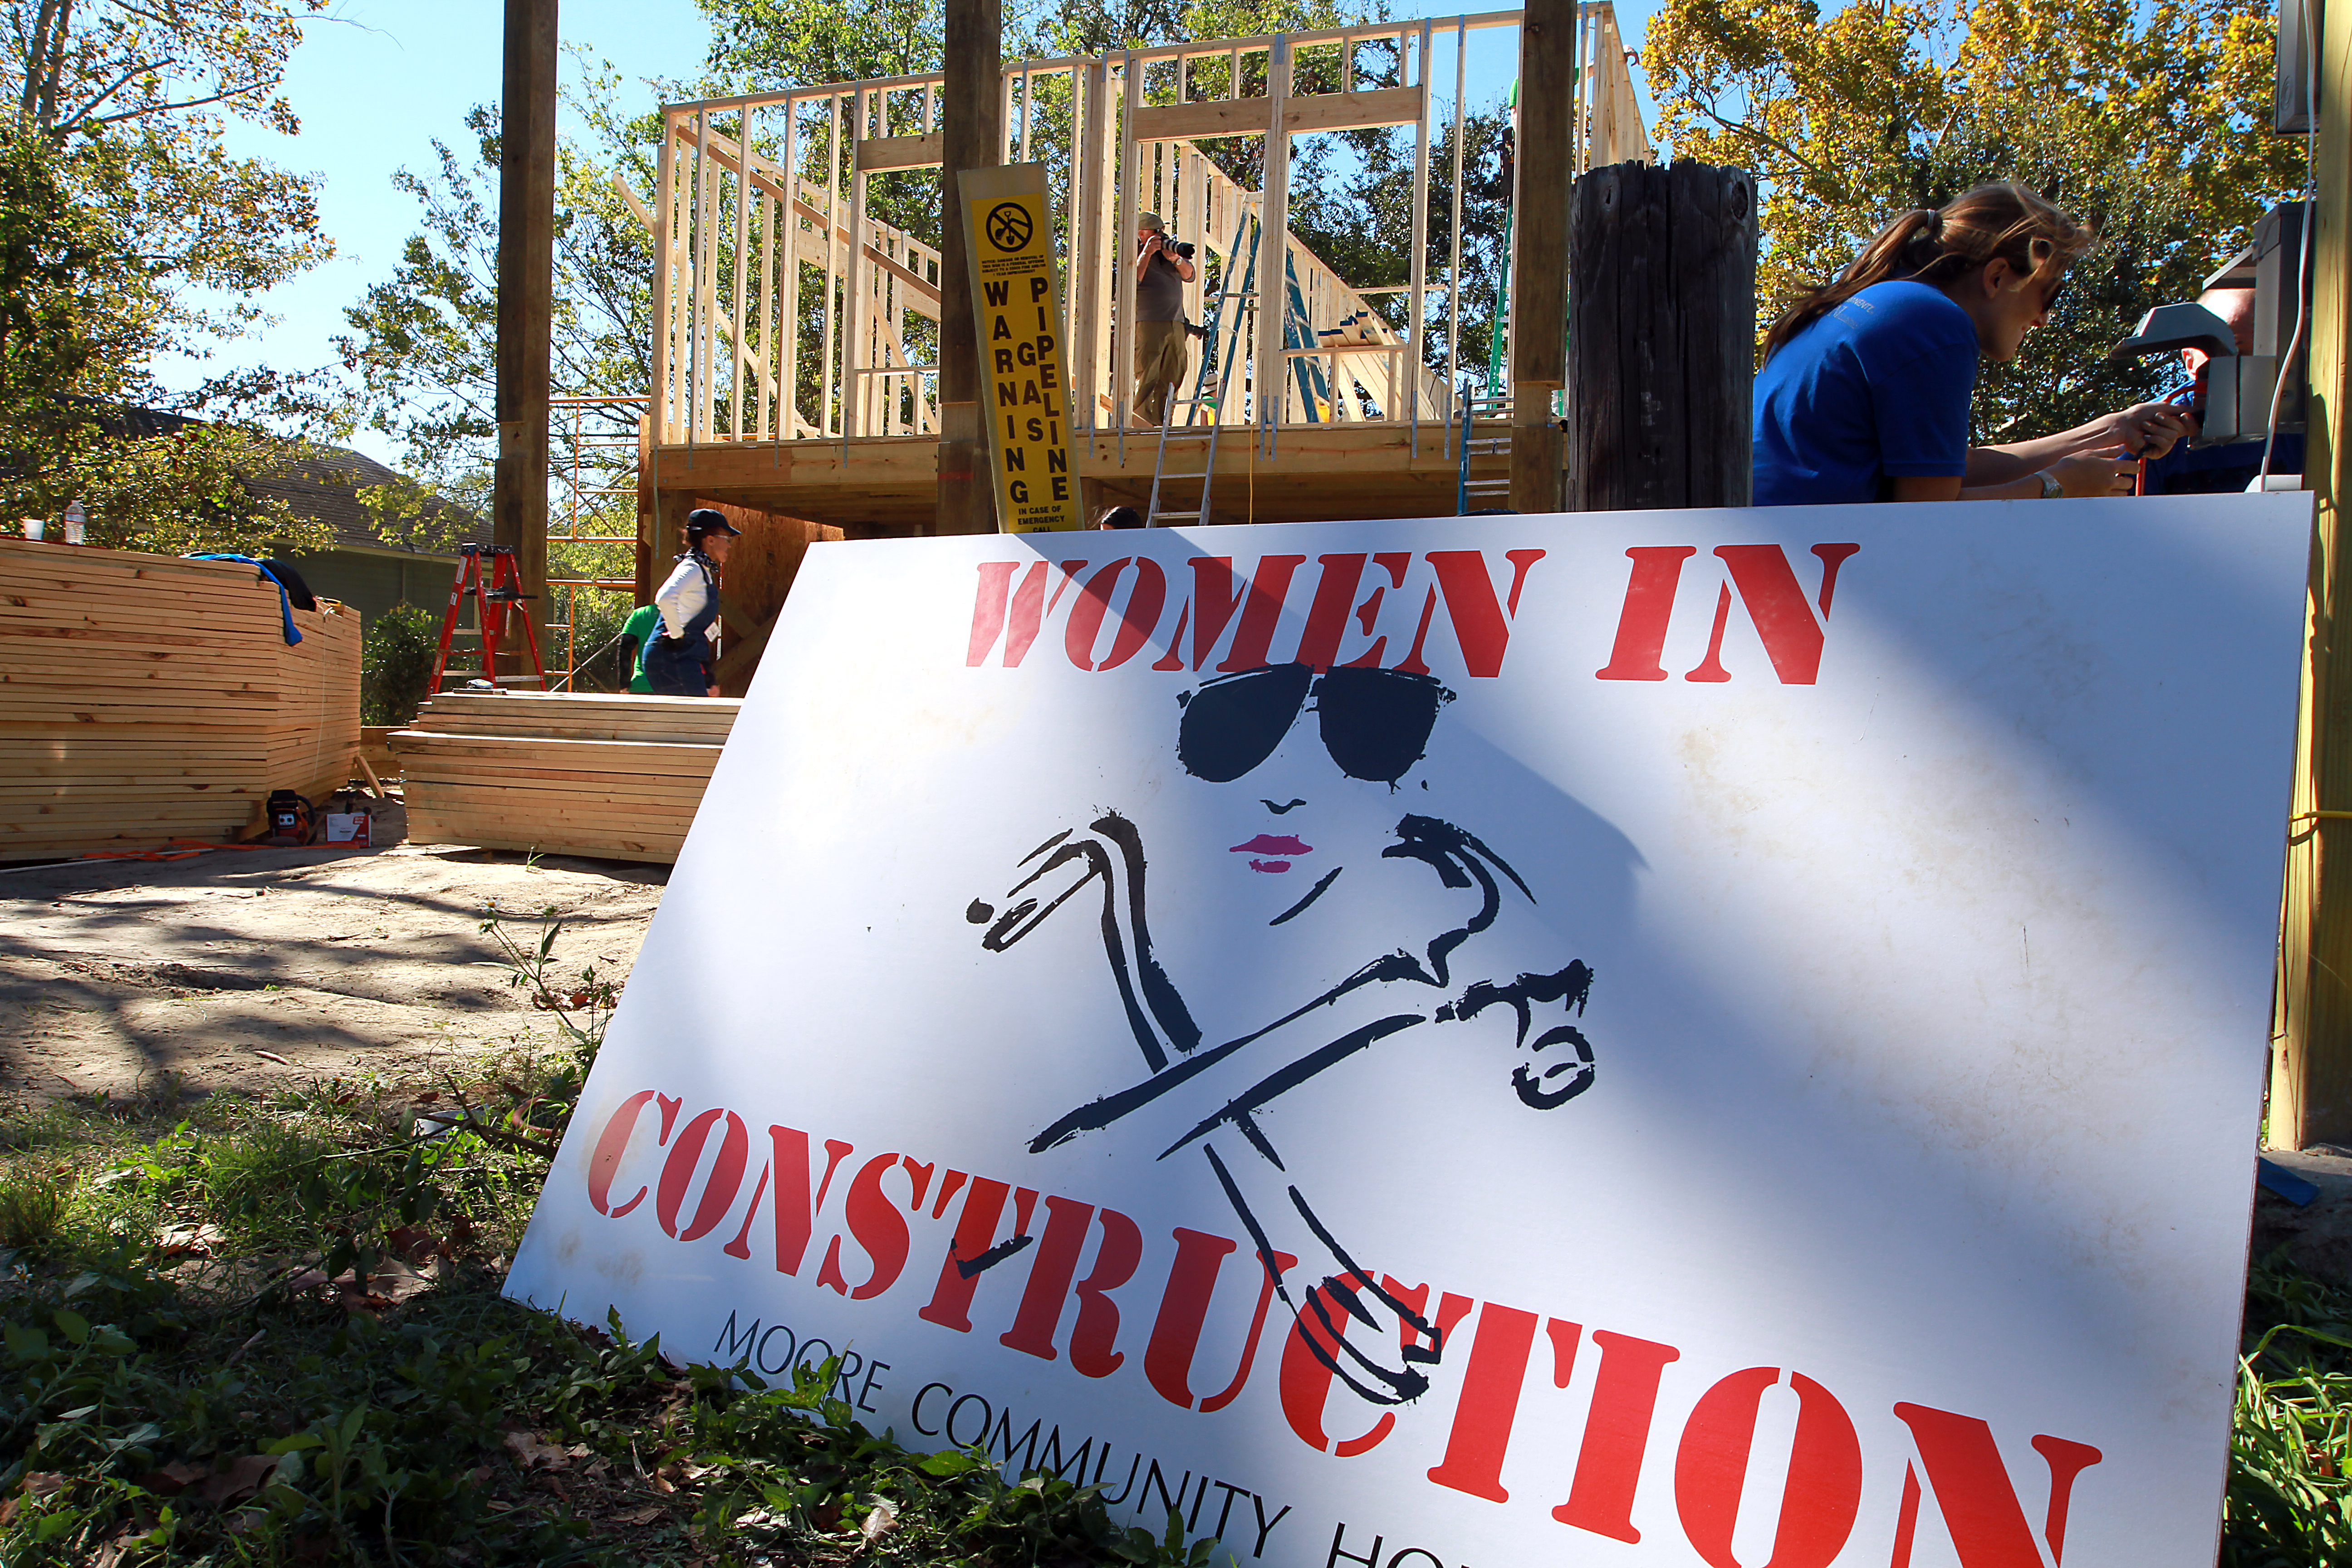 Women in Construction045